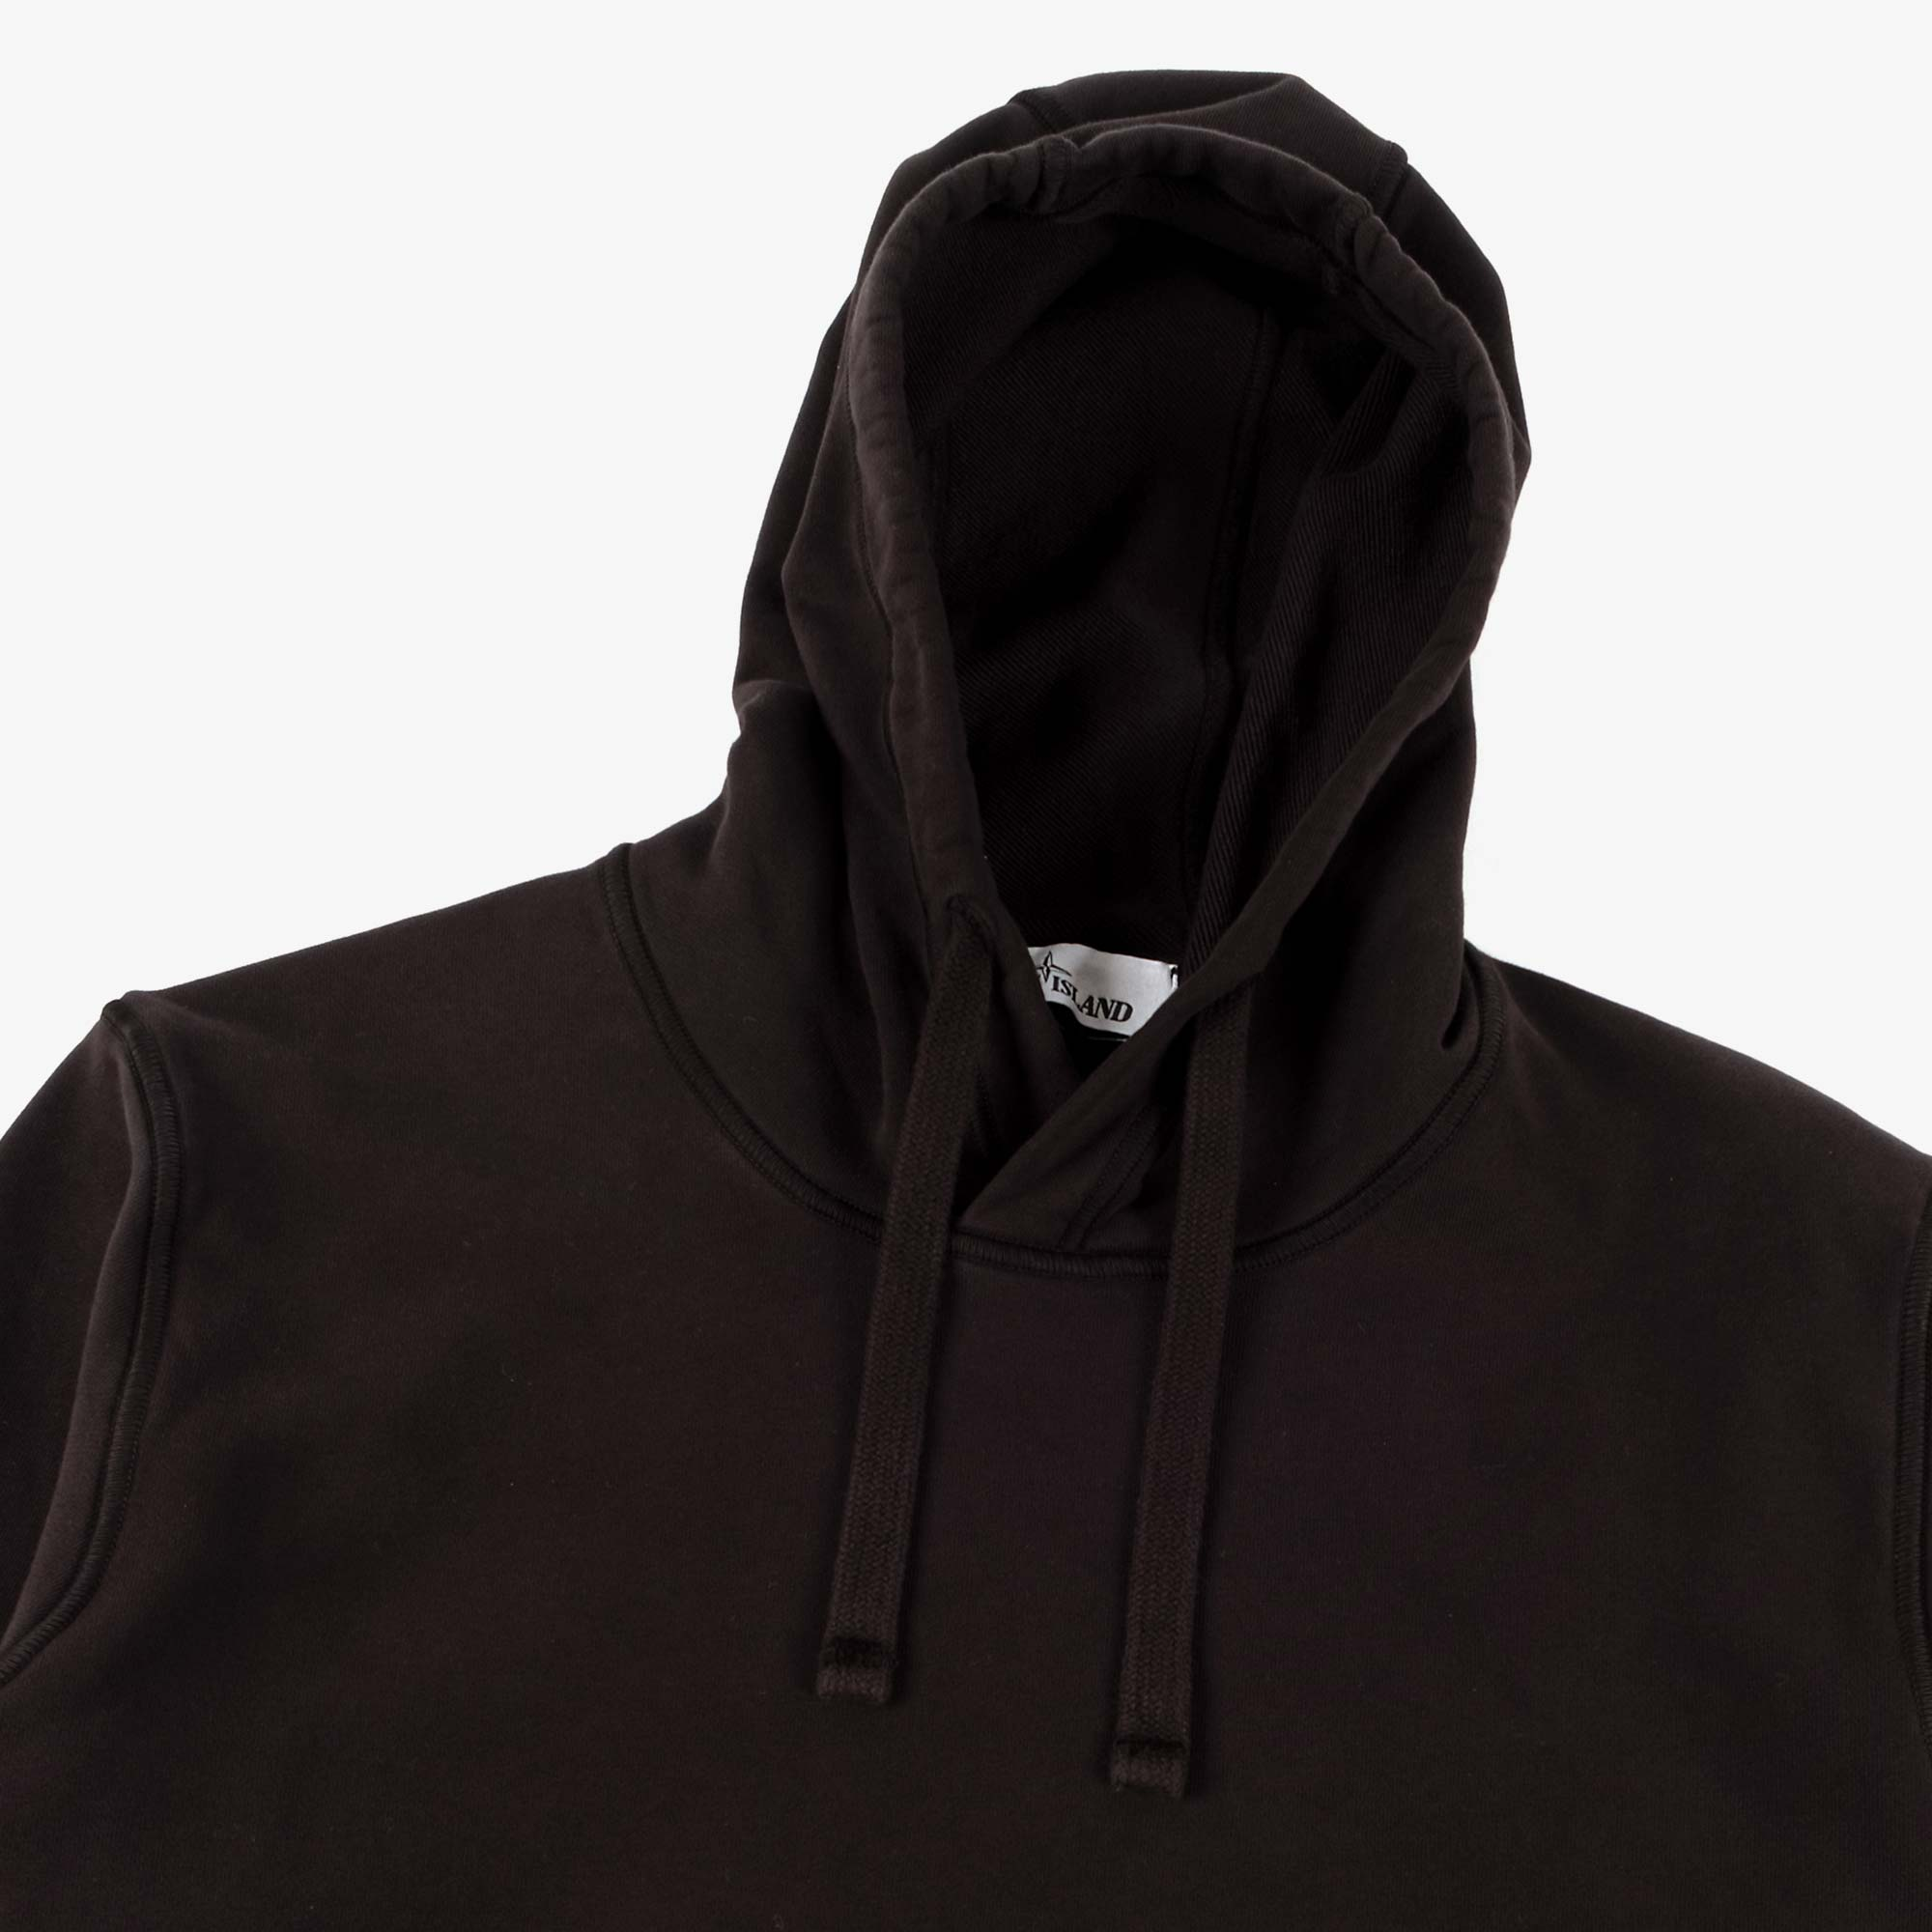 Stone Island Garment Dyed Hooded Sweat 741564151 - Black 4